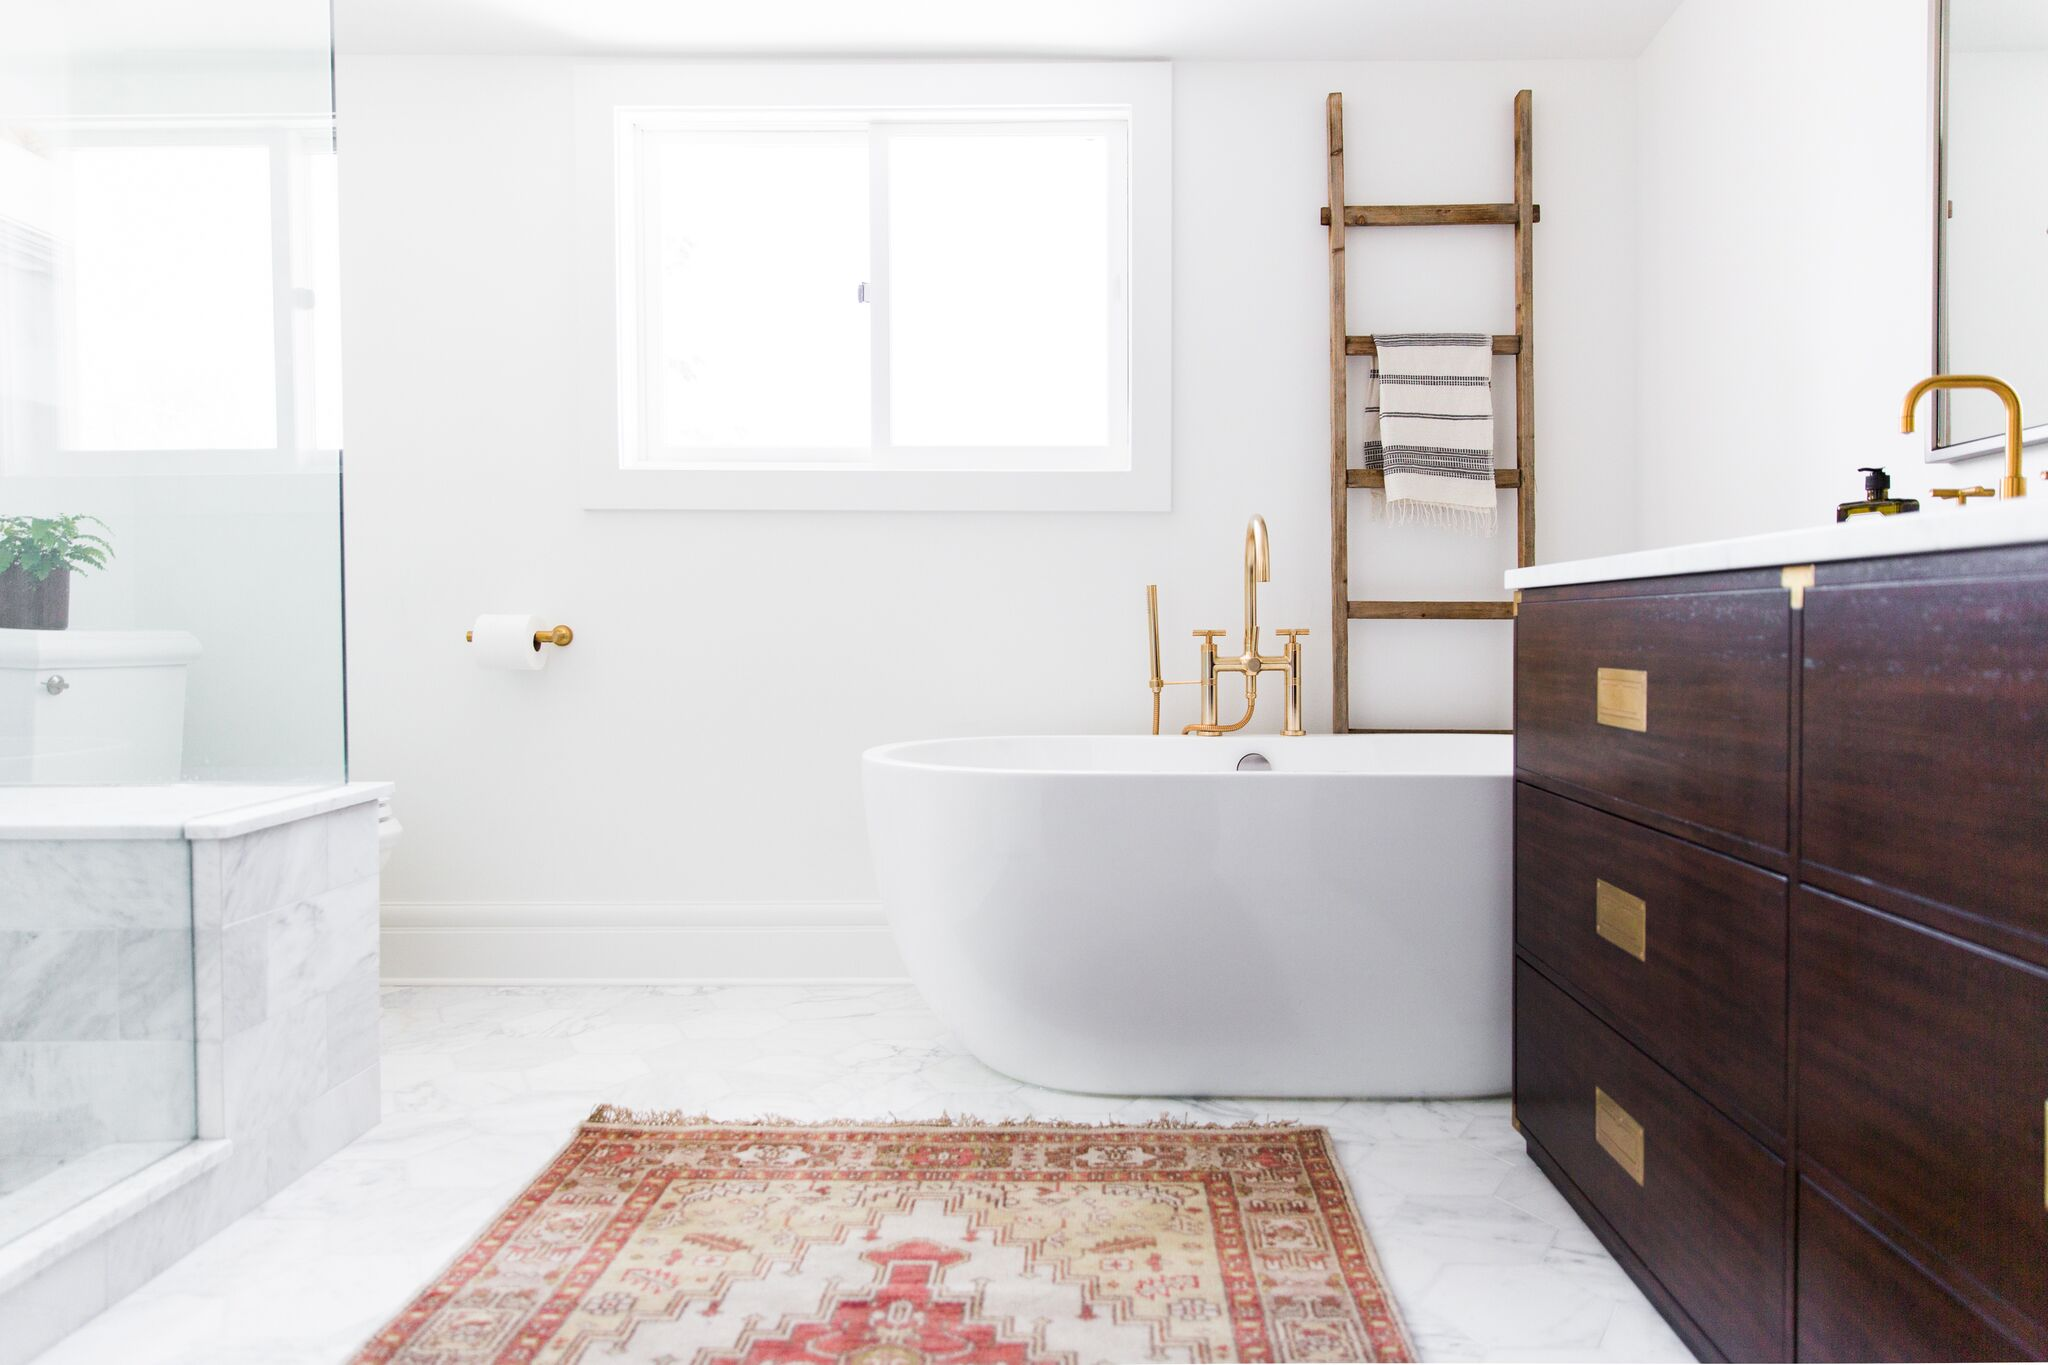 White statement bathtub in front of window